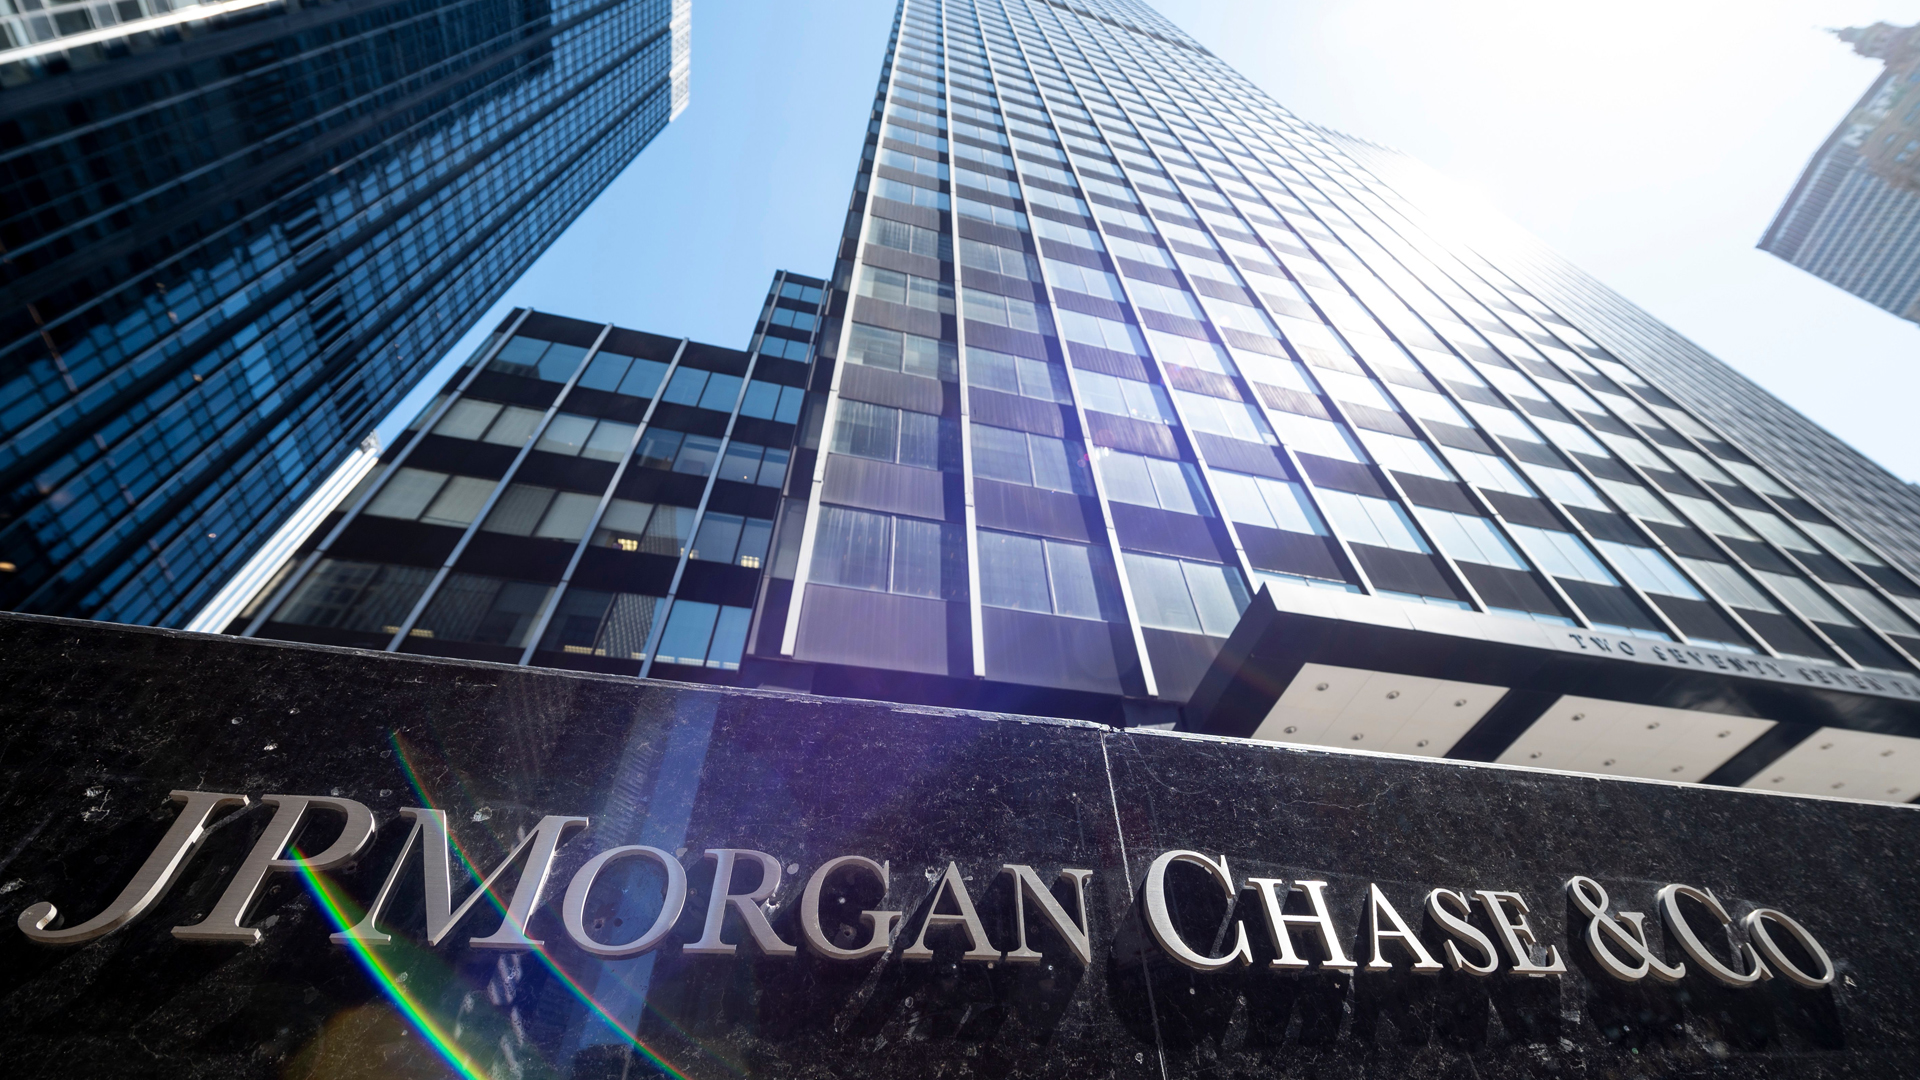 The JPMorgan Chase & Co. World headquarters is pictured on April 17, 2019 in New York City. (Credit: JOHANNES EISELE/AFP/Getty Images)